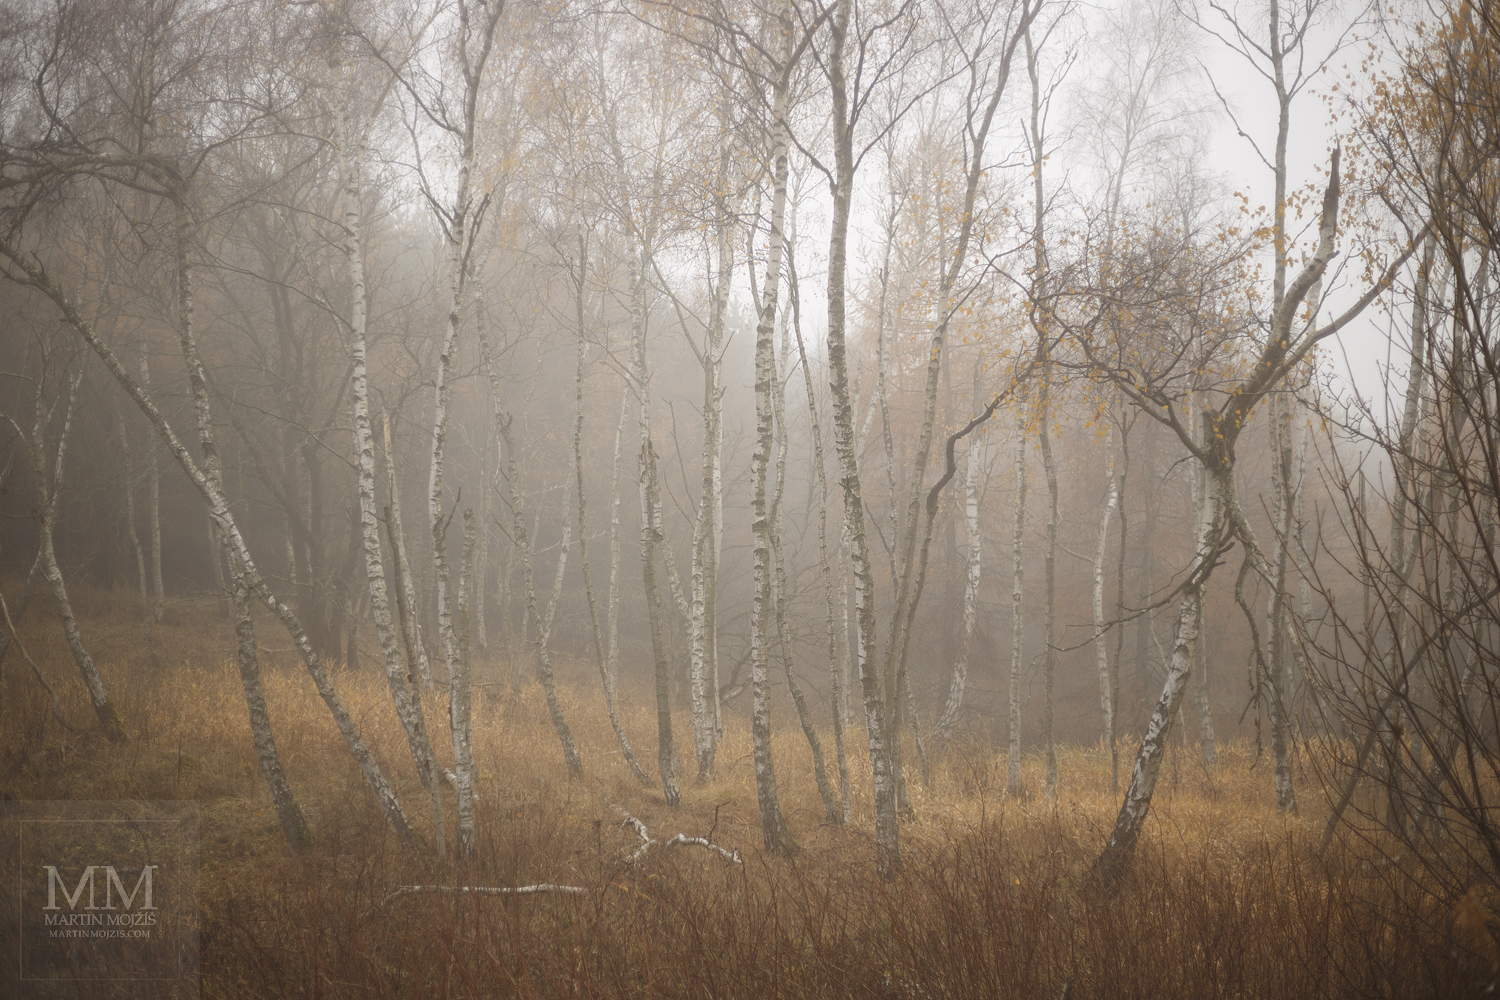 Large format, fine art photograph of birch grove in fog. Martin Mojzis.